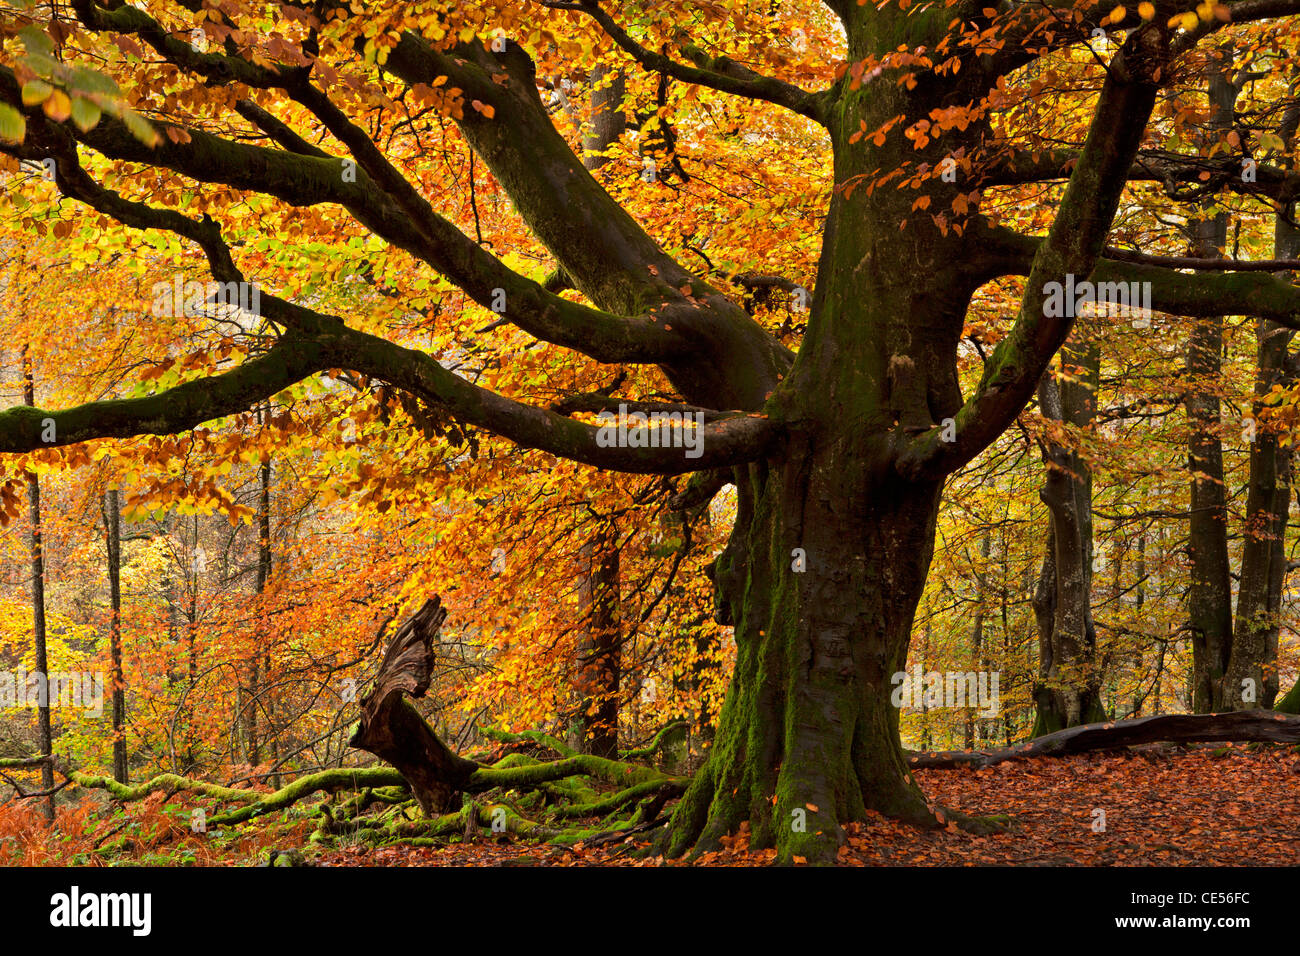 Beech tree with beautiful golden autumnal colours, Lake District, Cumbria, England. Autumn (October) 2011. - Stock Image